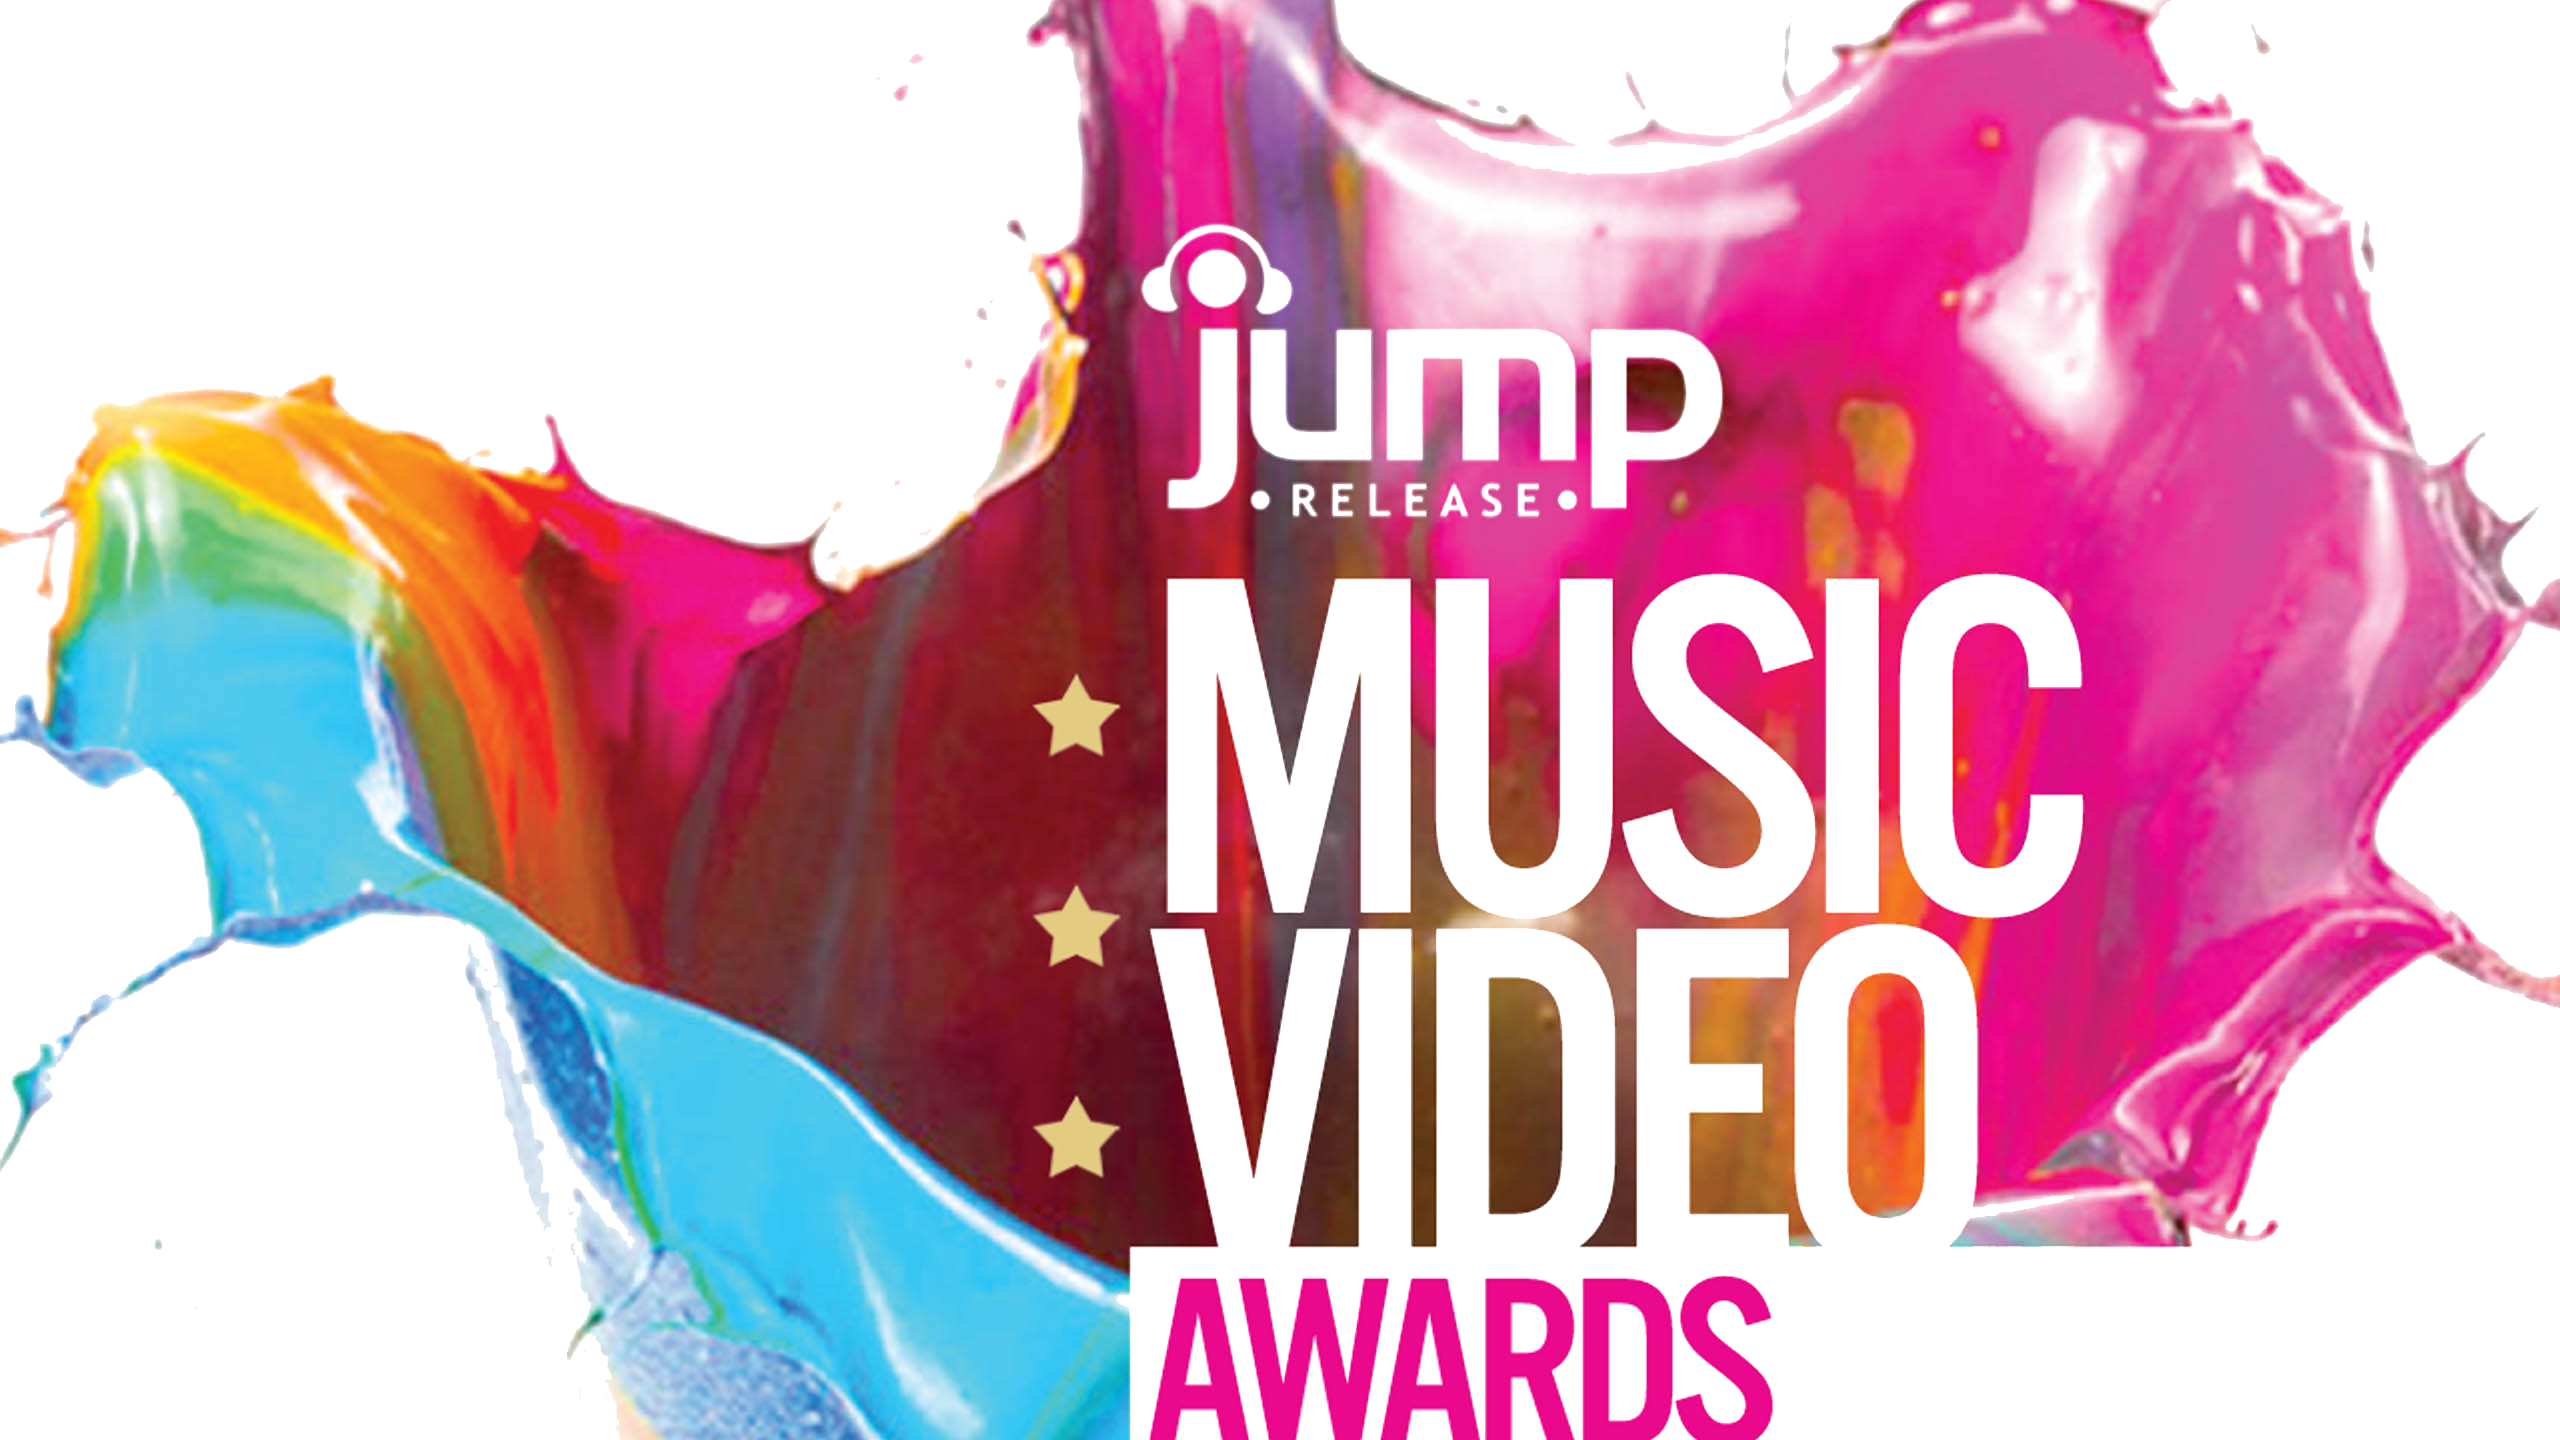 JUMP MUSIC VIDEO AWARDS LOGO